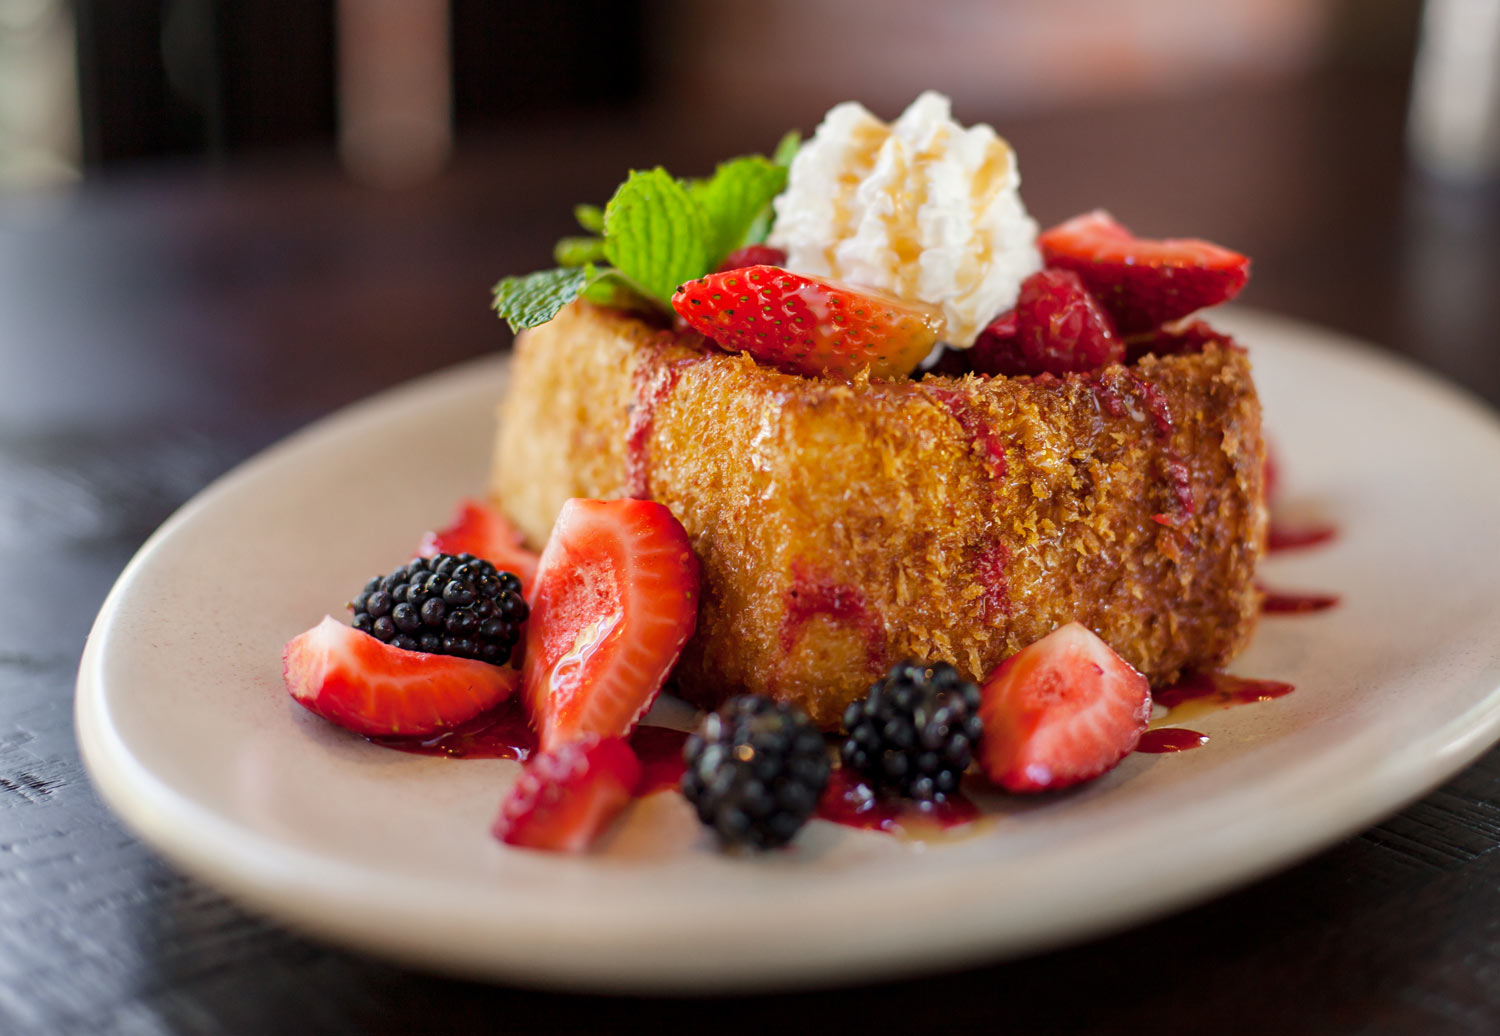 Food_photography_French_toast_fried_powdered_sugar_mint_strawberries_farm-to-fork.jpg